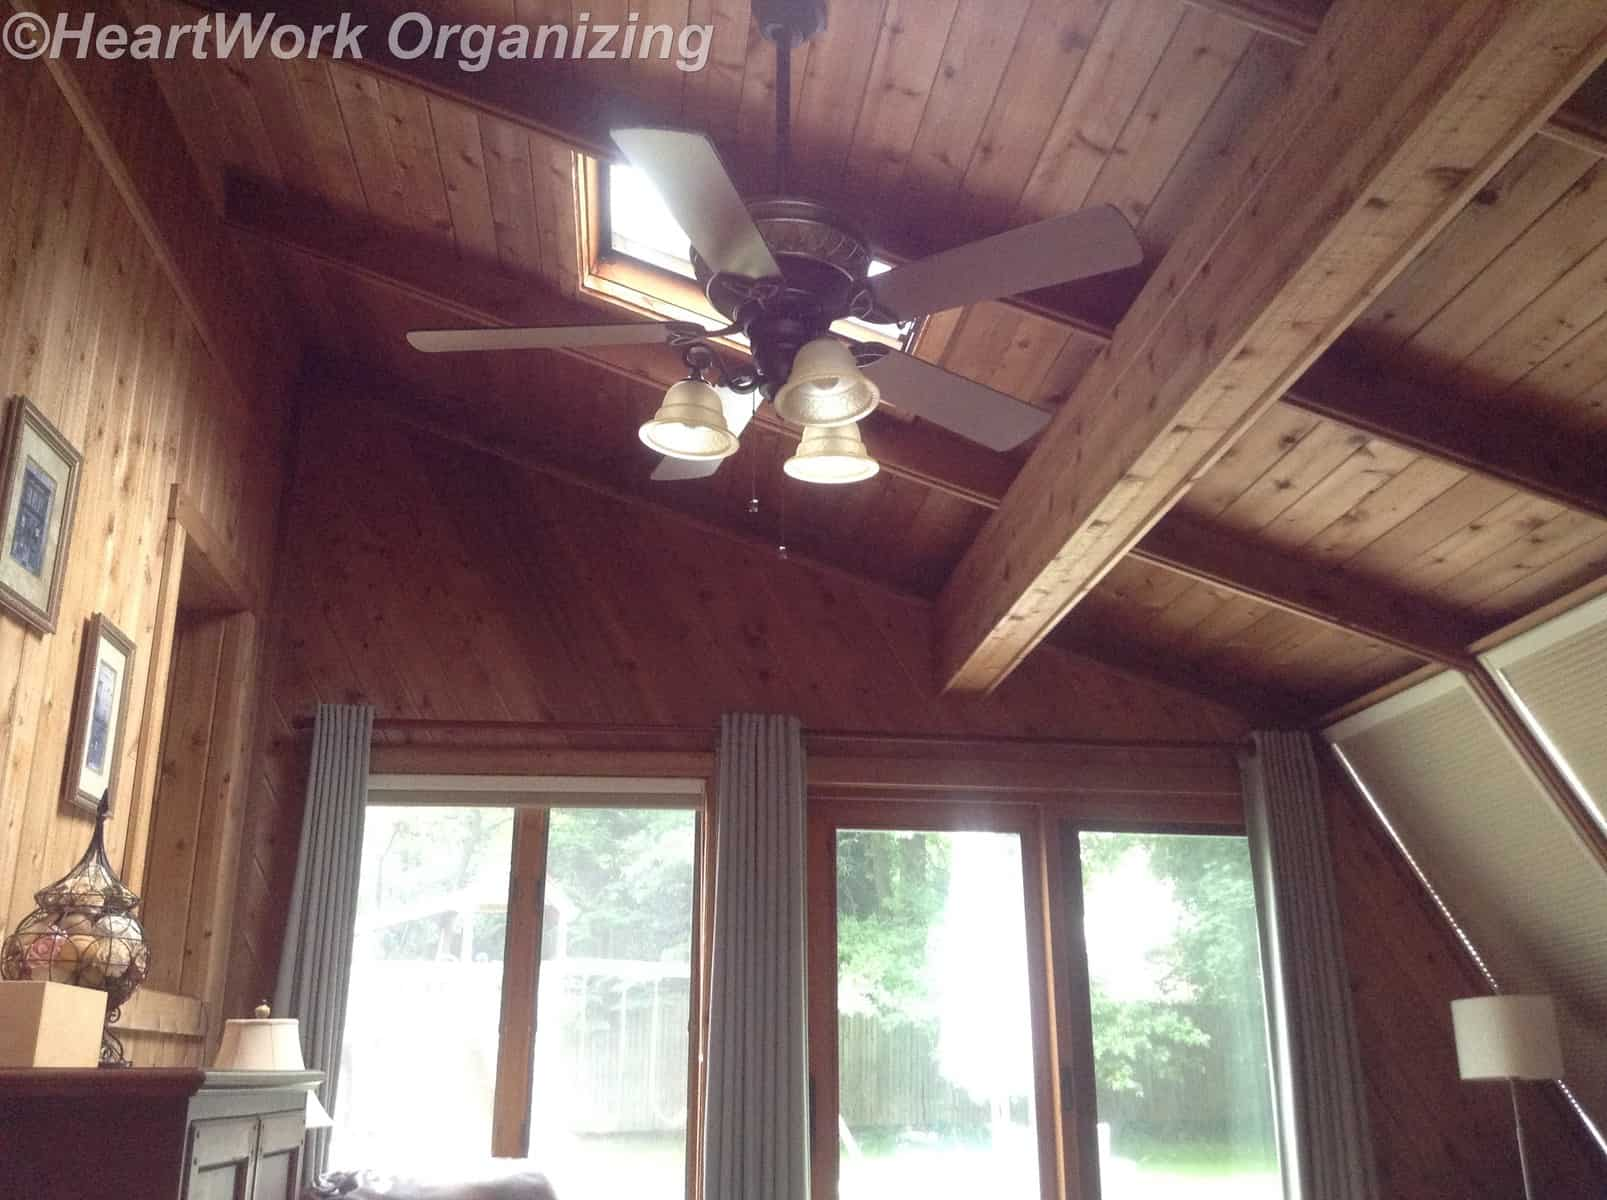 Sunroom Lighting Ideas HeartWork Organizing Tips for Organizing